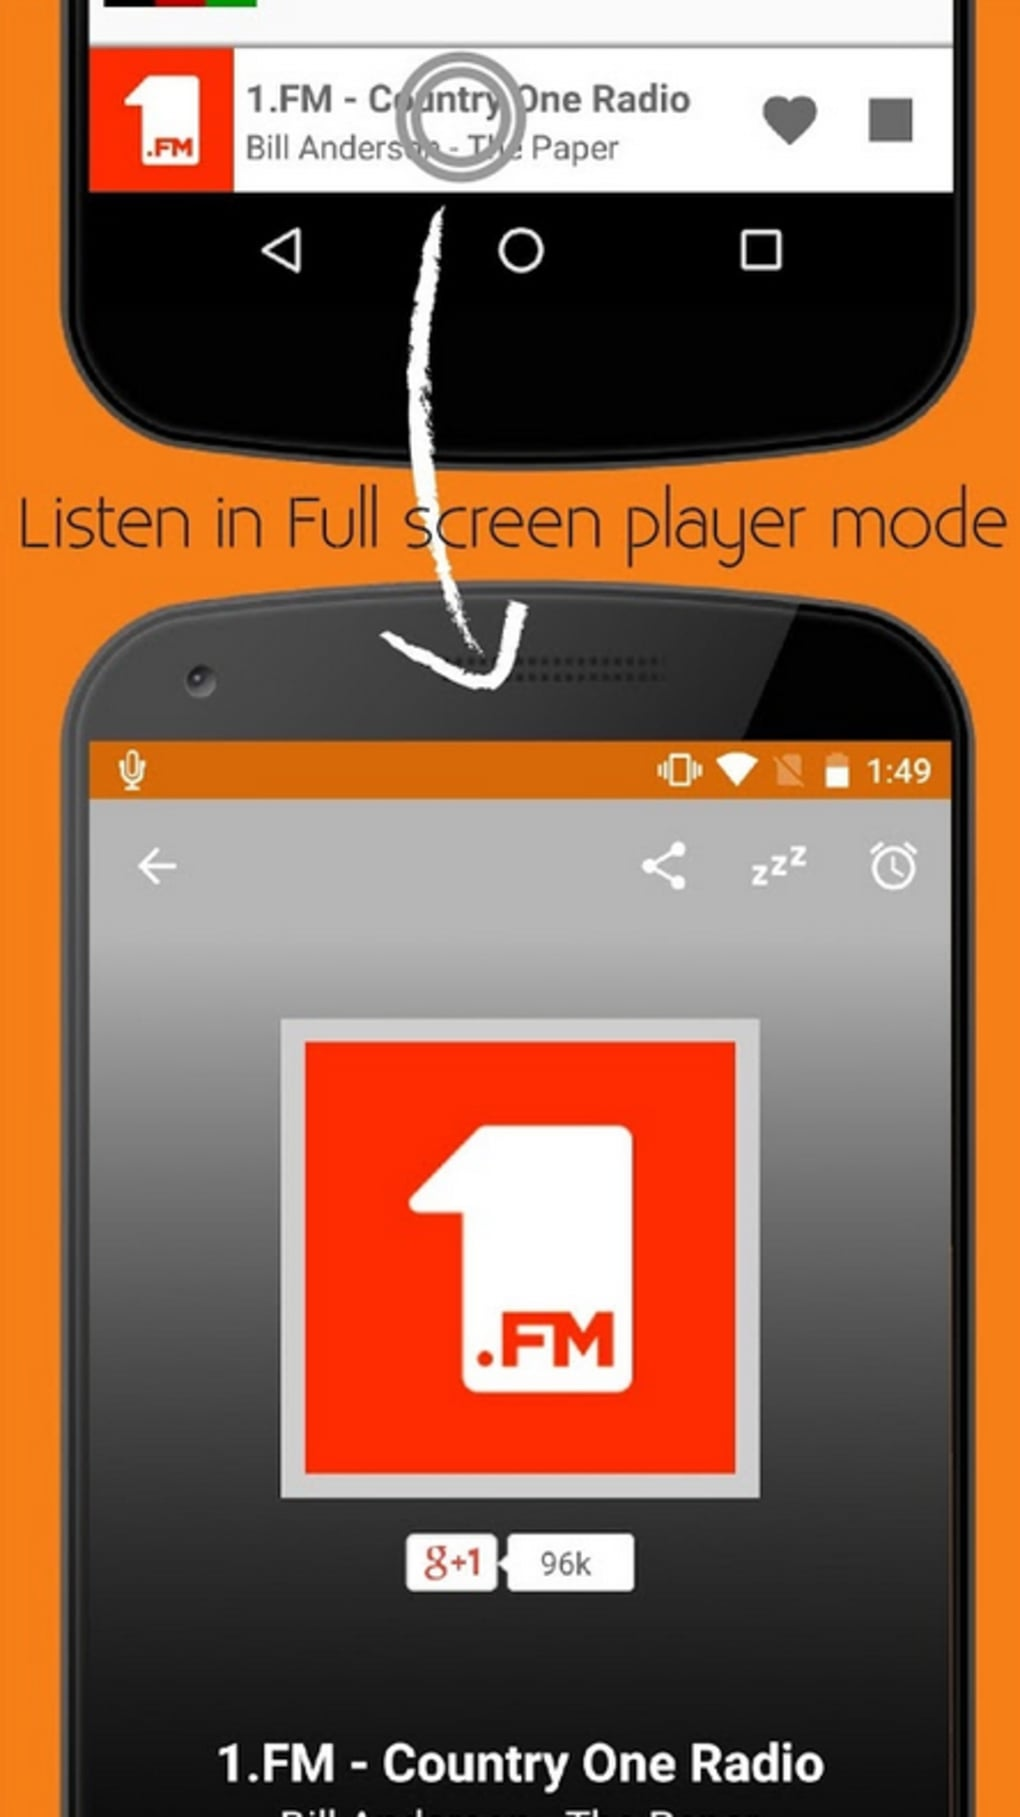 Tamil fm radio software download for windows 7 | Free Tamil Music ON